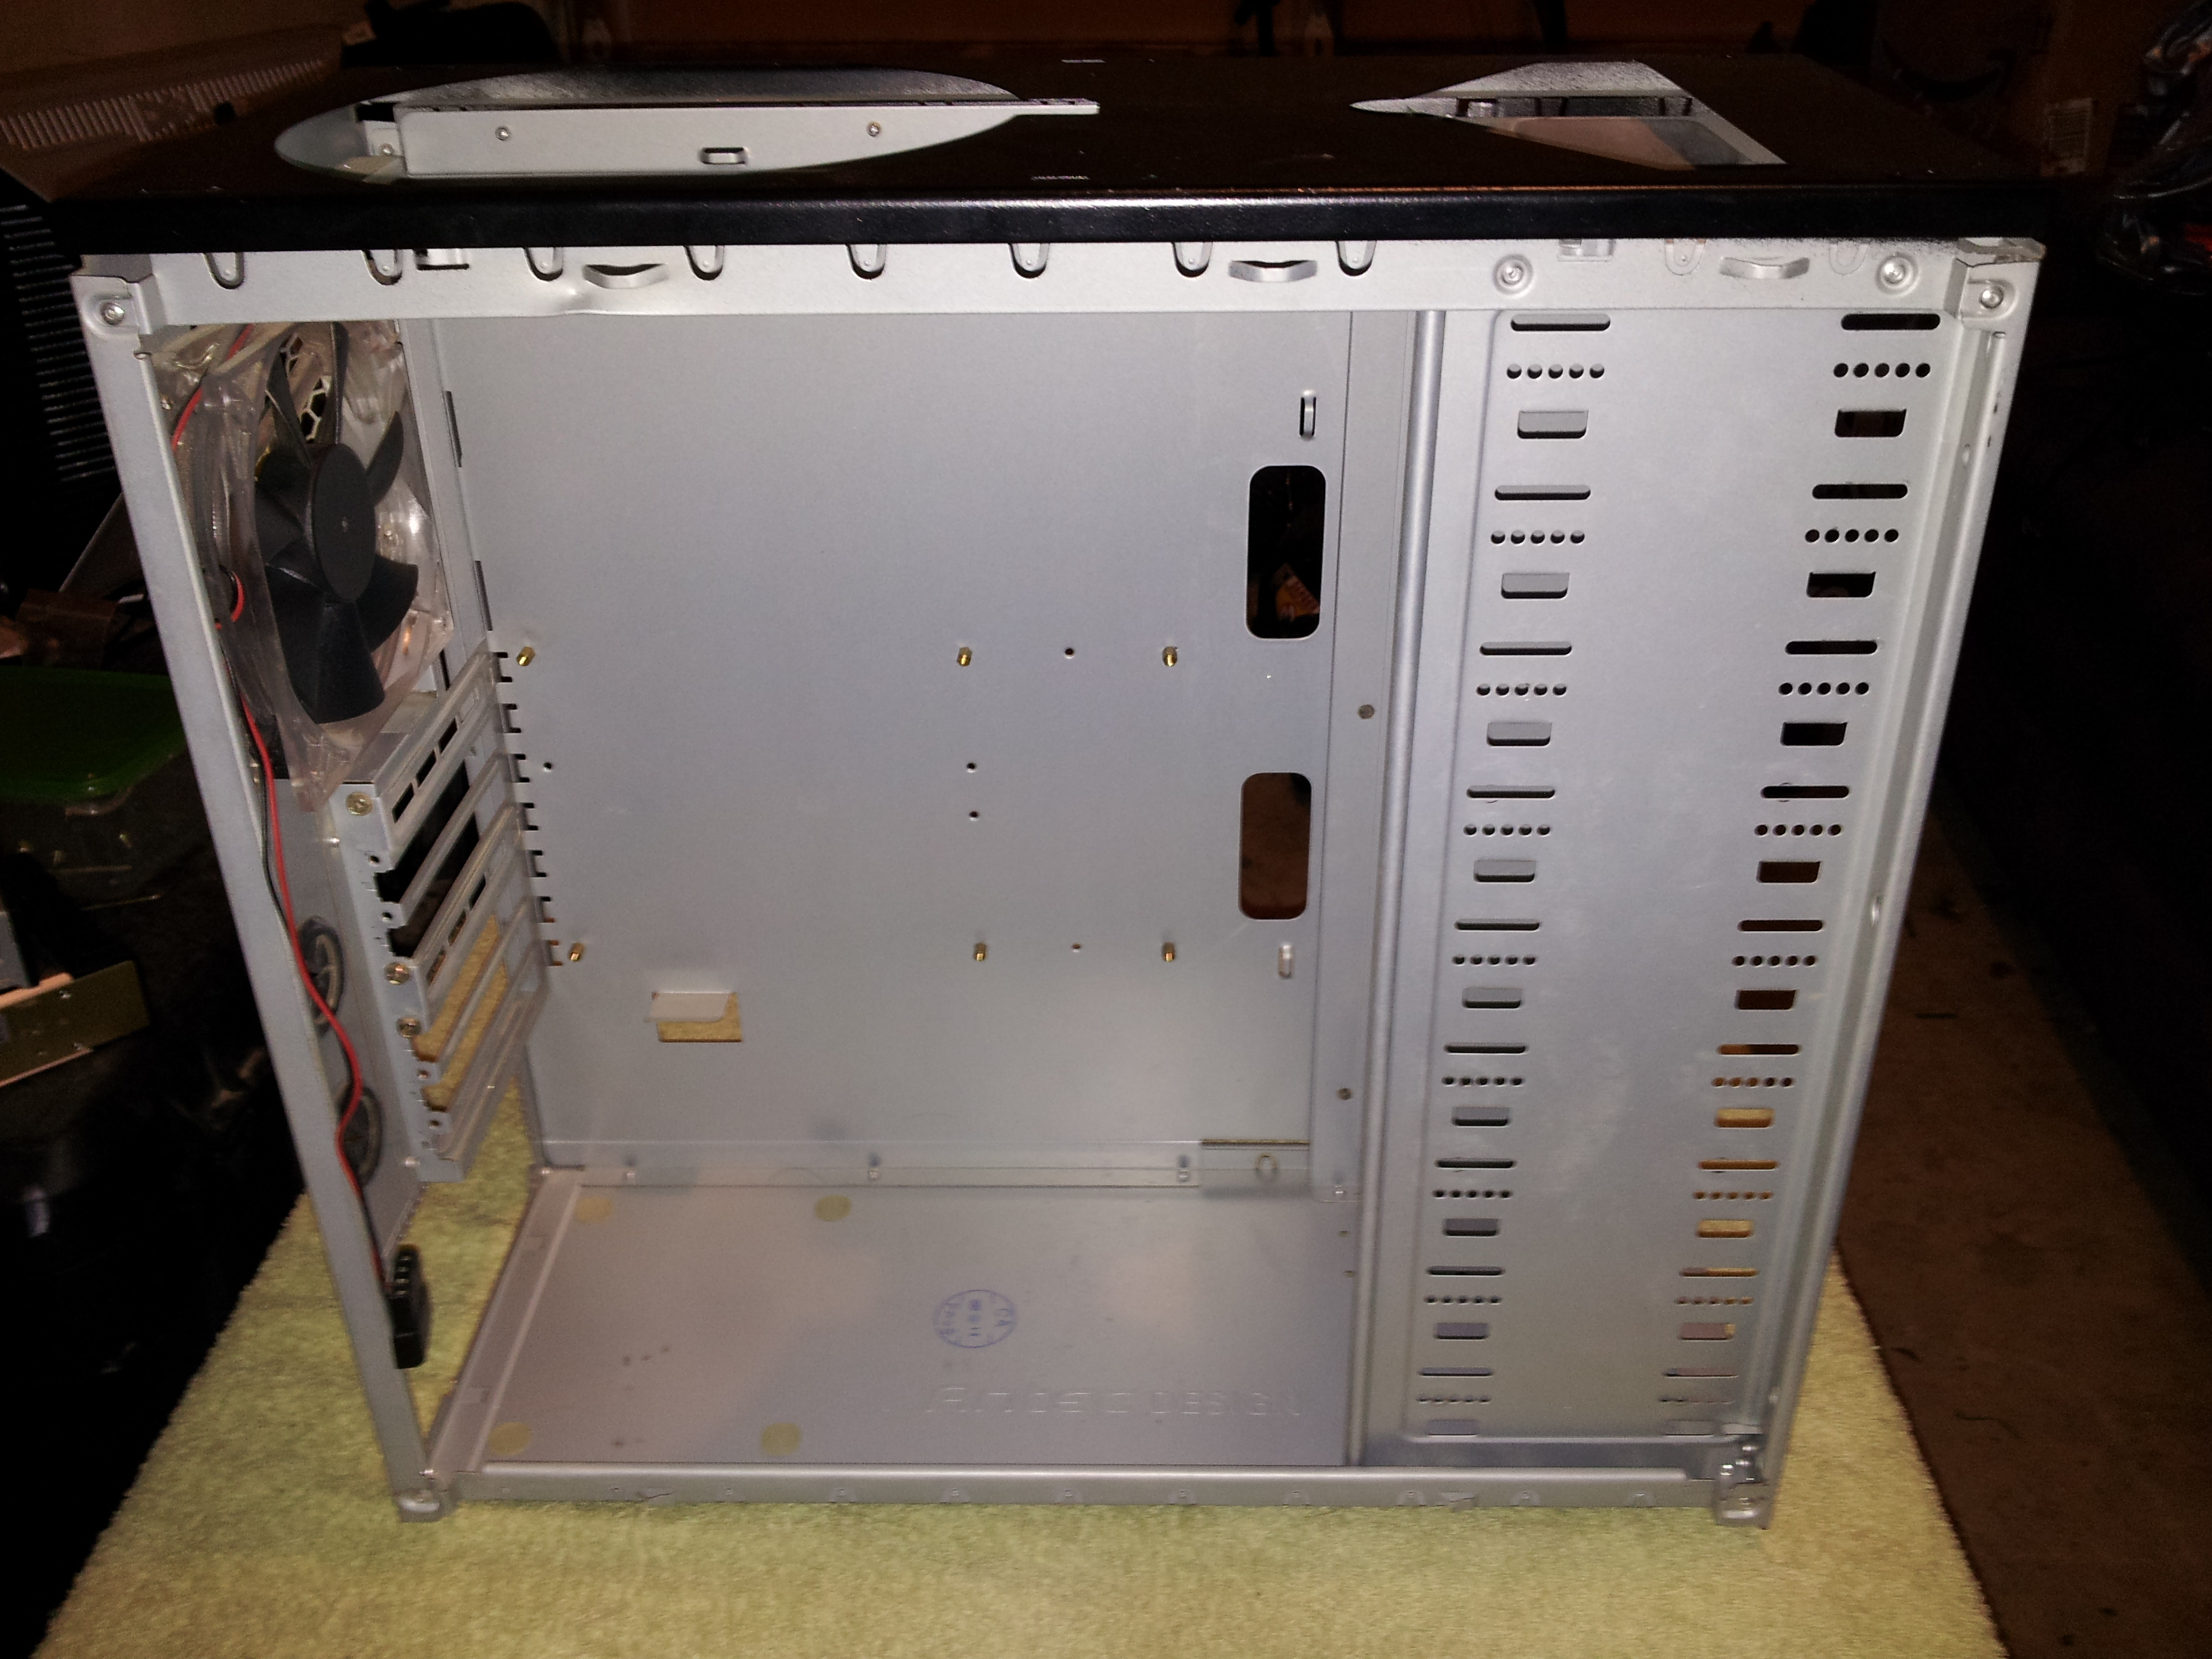 Antec 900 case after being stripped down for cleaning and upgrade.